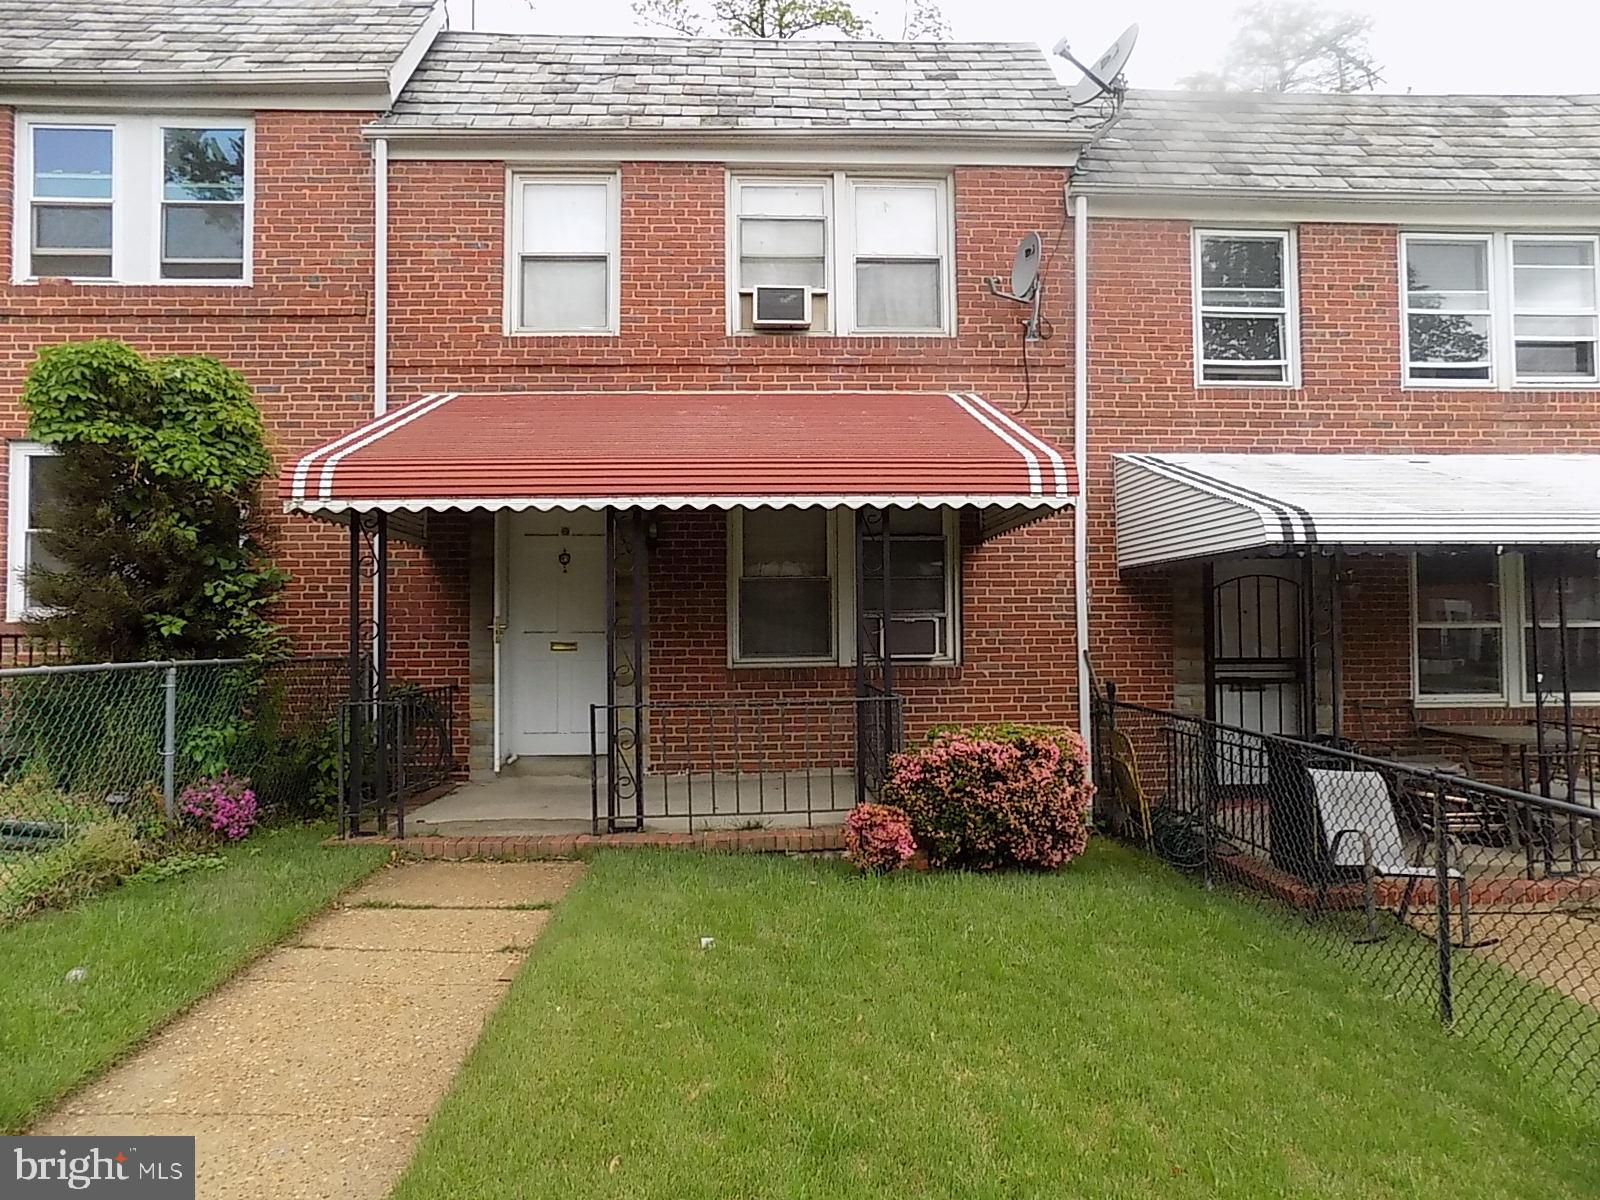 This is a beautiful well maintained home situated in the beautiful neighborhood of Norwood Heights.